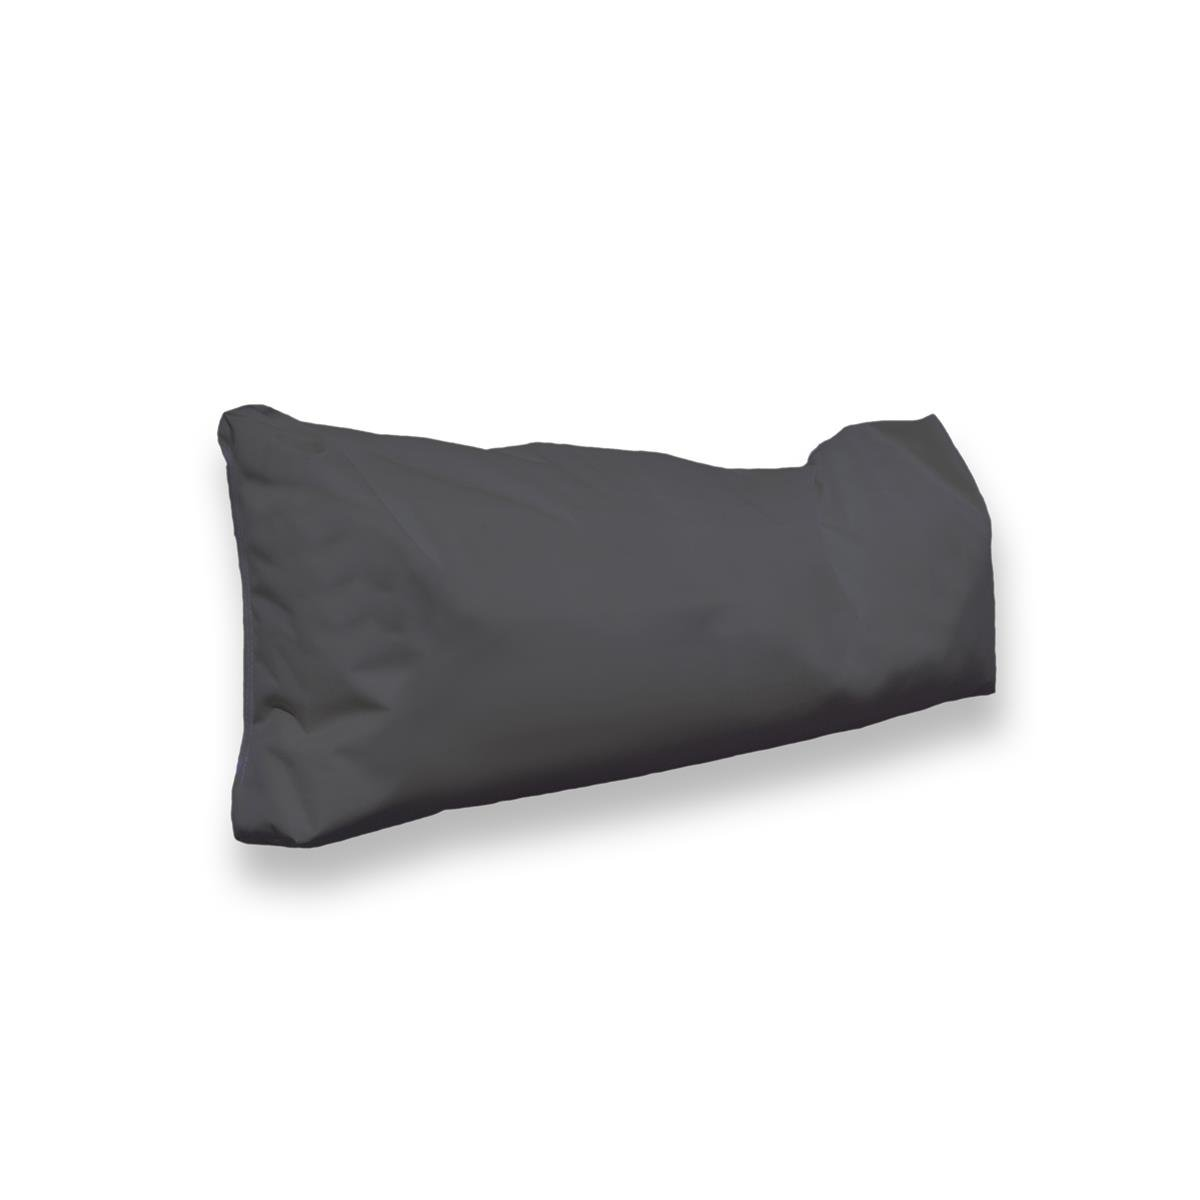 Berlinpillow  4260406163778 Original Bean Bag In und Outdoor PalettenRückenkissen Pallets Bag, 160 x 30 x 10 cm, anthrazit